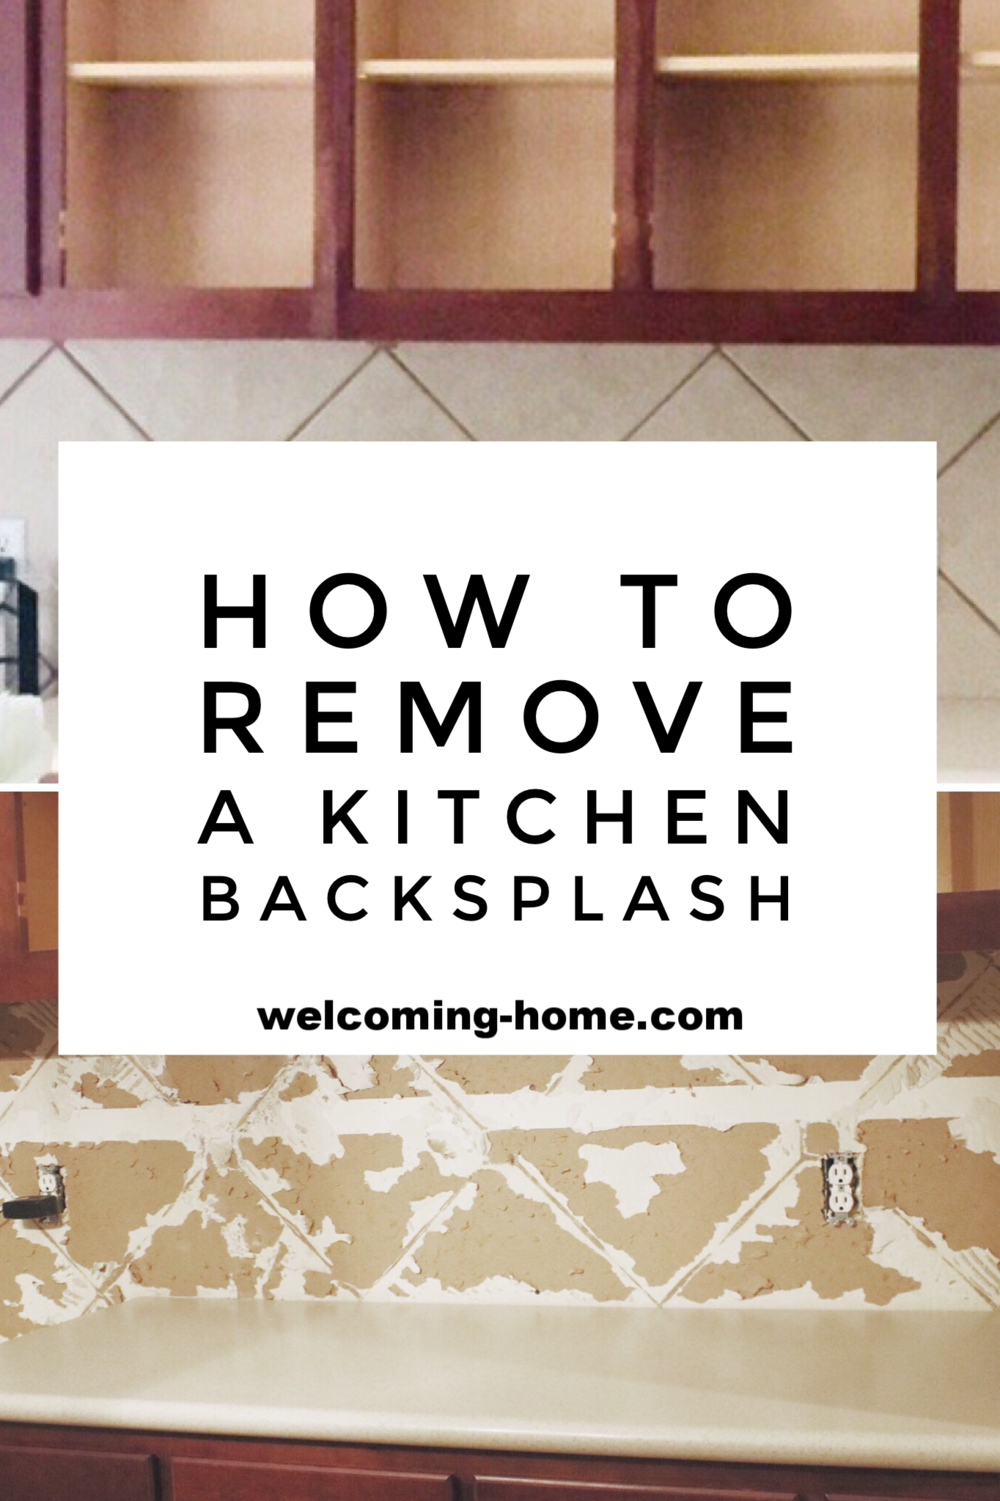 how to remove a kitchen backsplash.PNG